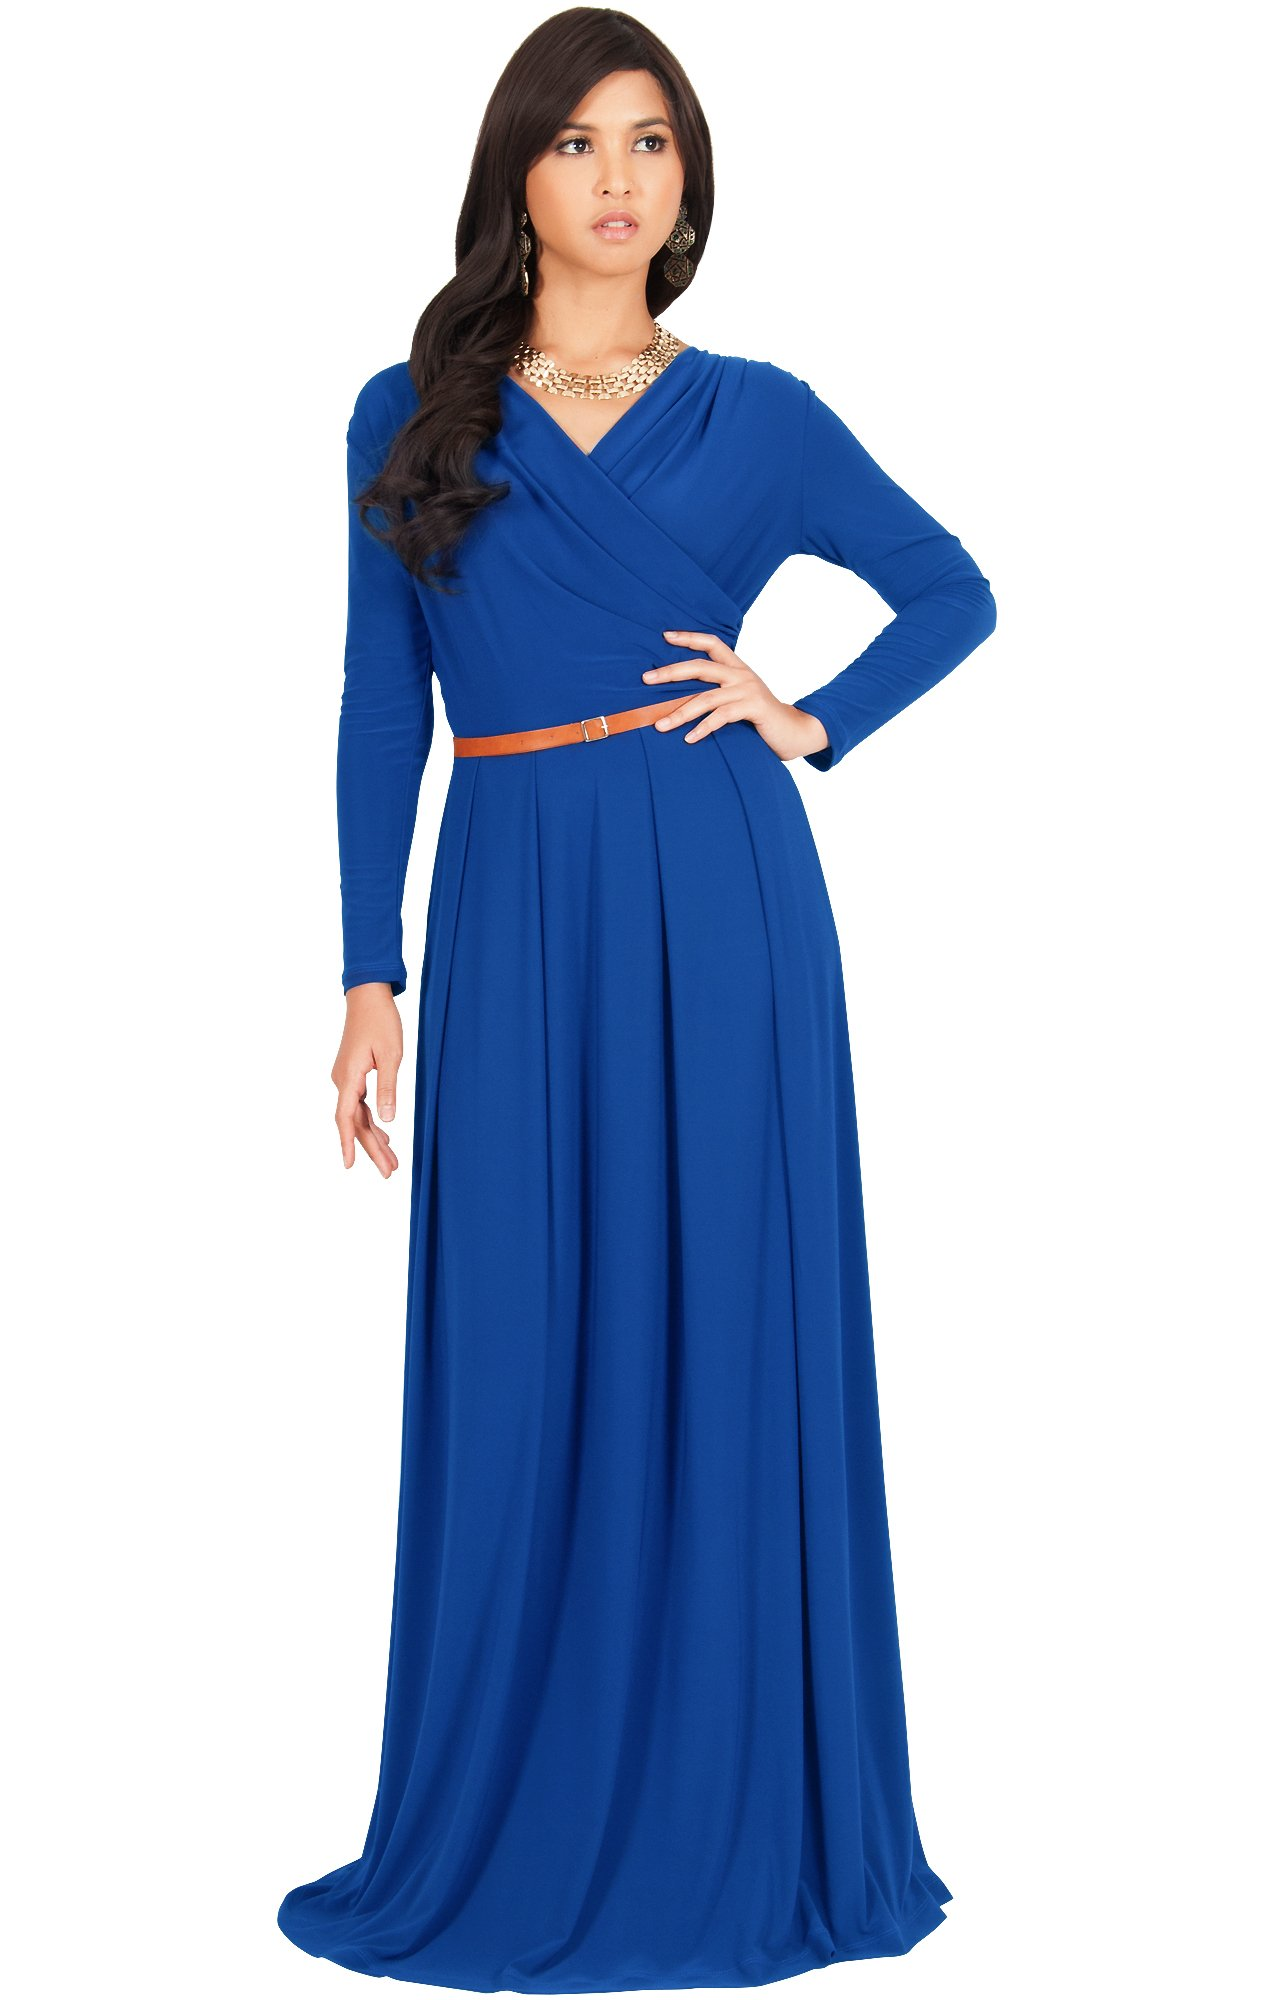 KOH KOH Womens Long V-Neck Sleeve Sleeves Fall Formal Flowy Floor Length Evening Casual Day Modest Abaya Muslim Gown Gowns Maxi Dress Dresses, Cobalt/Royal Blue L 12-14